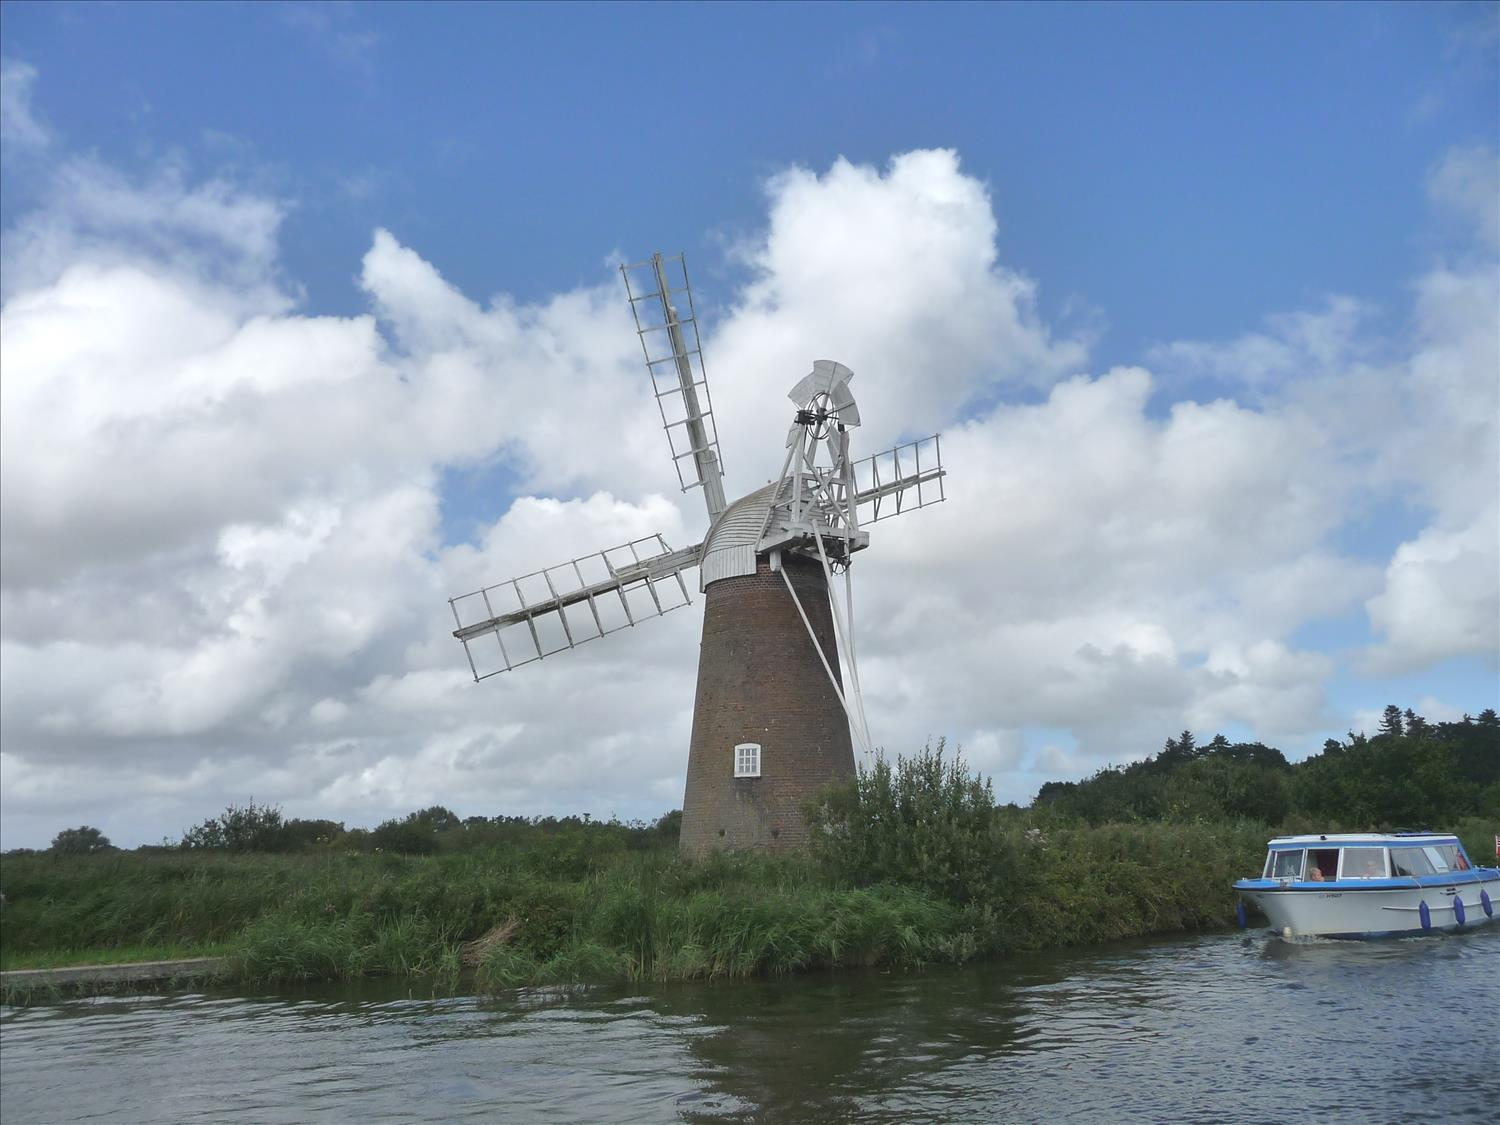 Discover Wroxham, Norfolk Broads